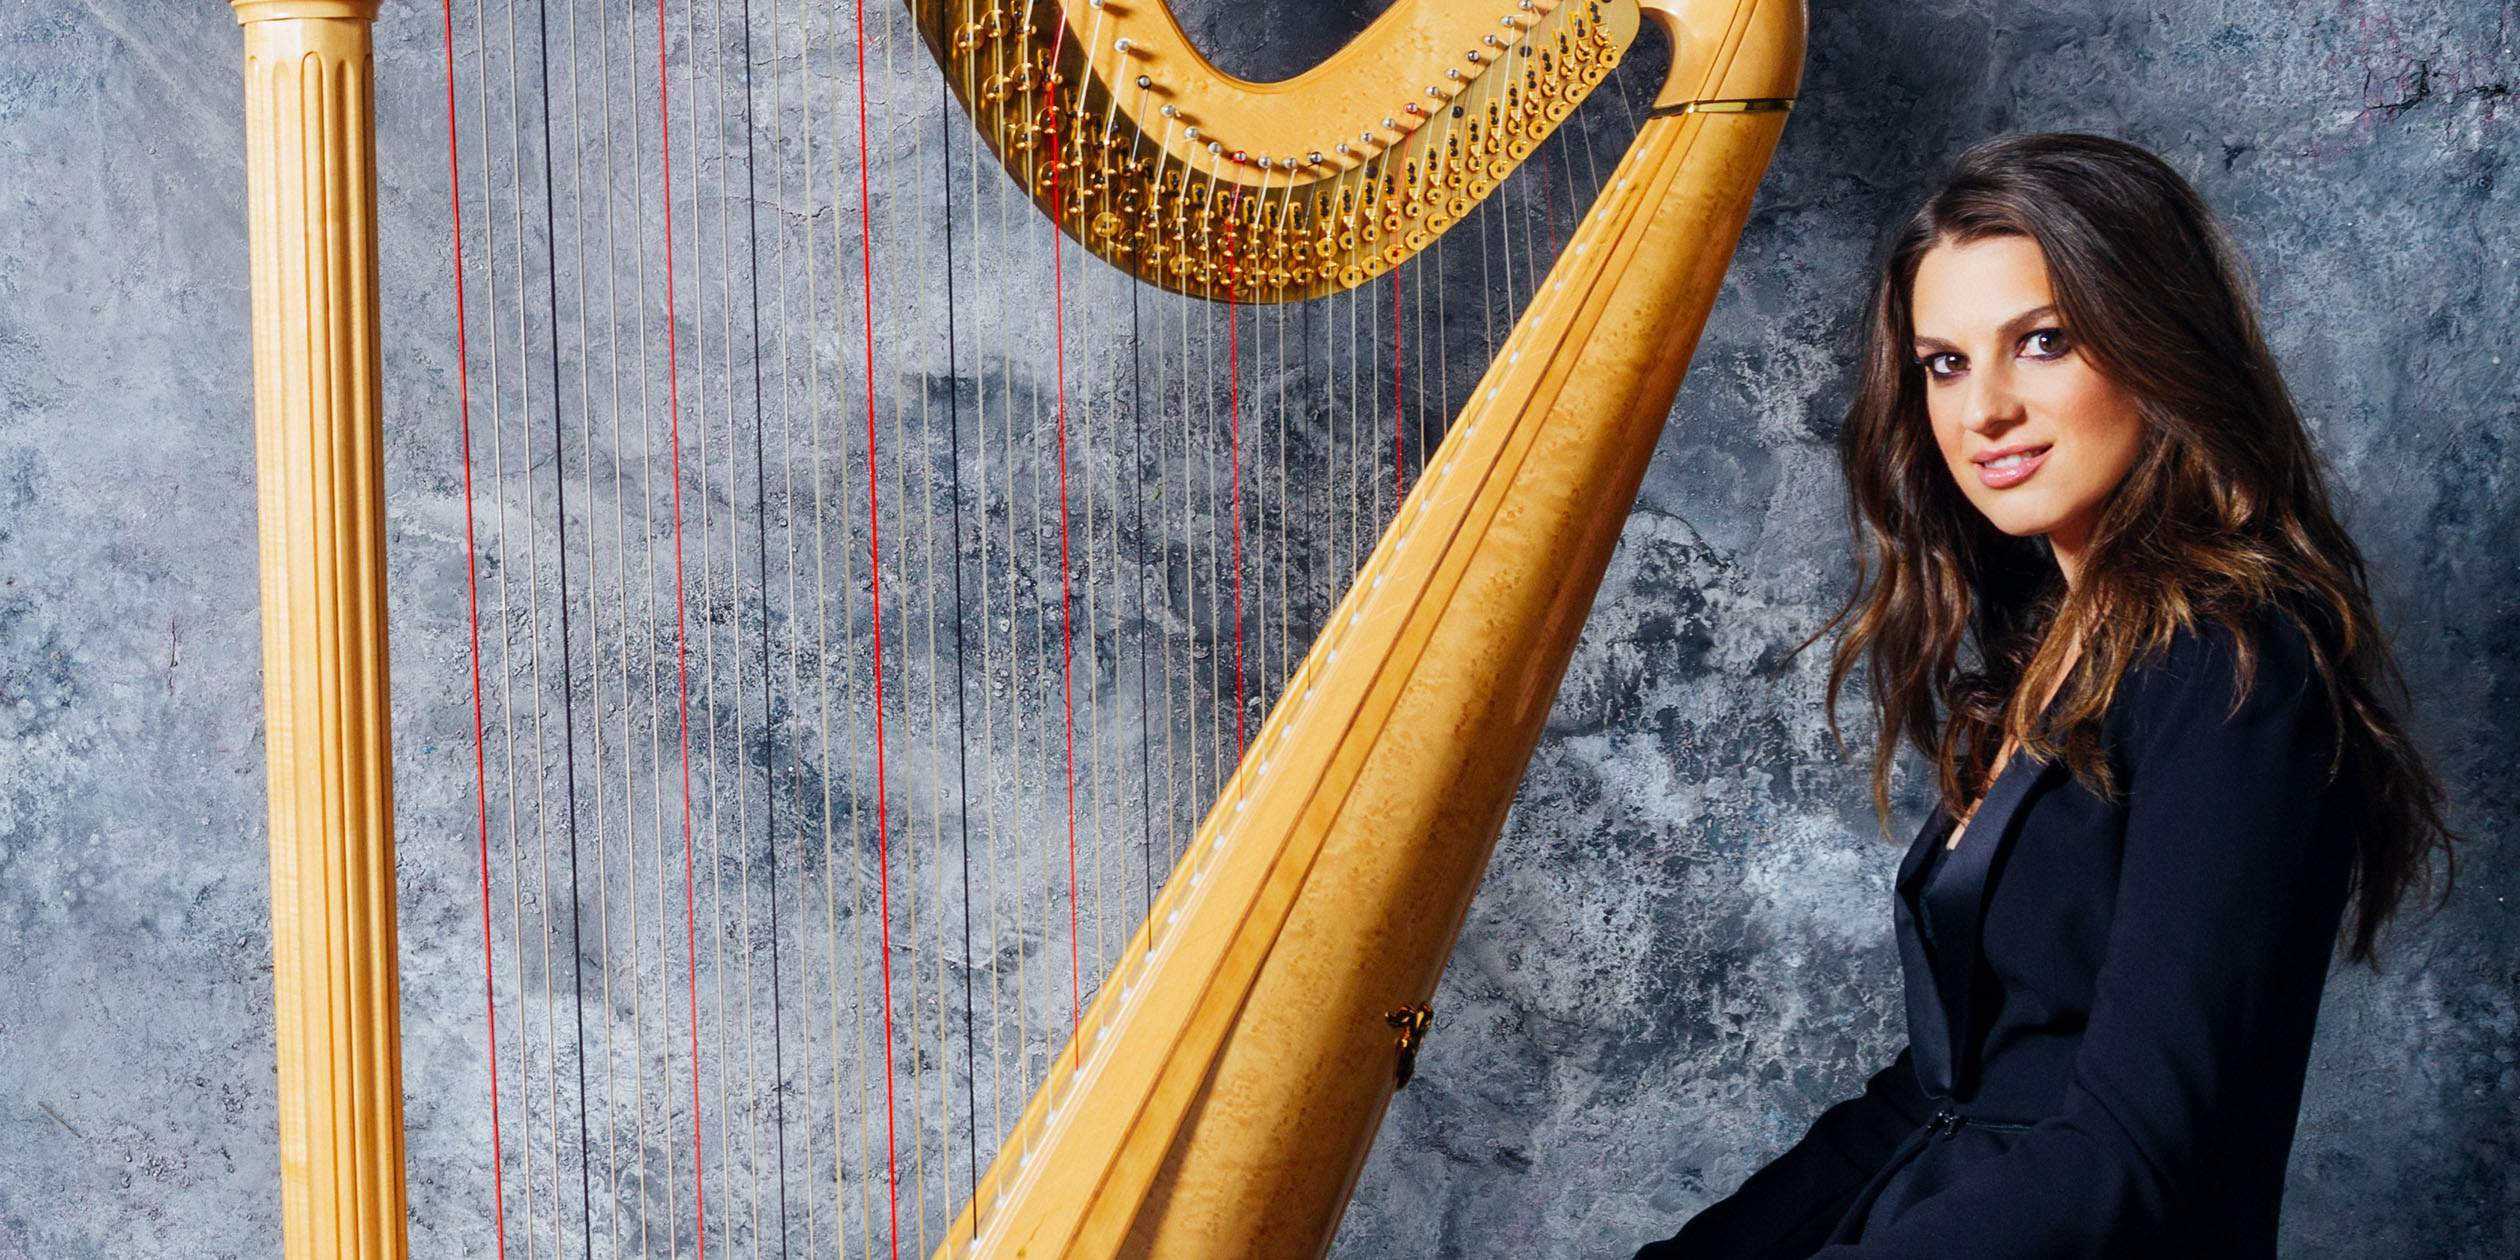 Only at Merkin with Terrance McKnight: Bridget Kibbey, Harp & Guests